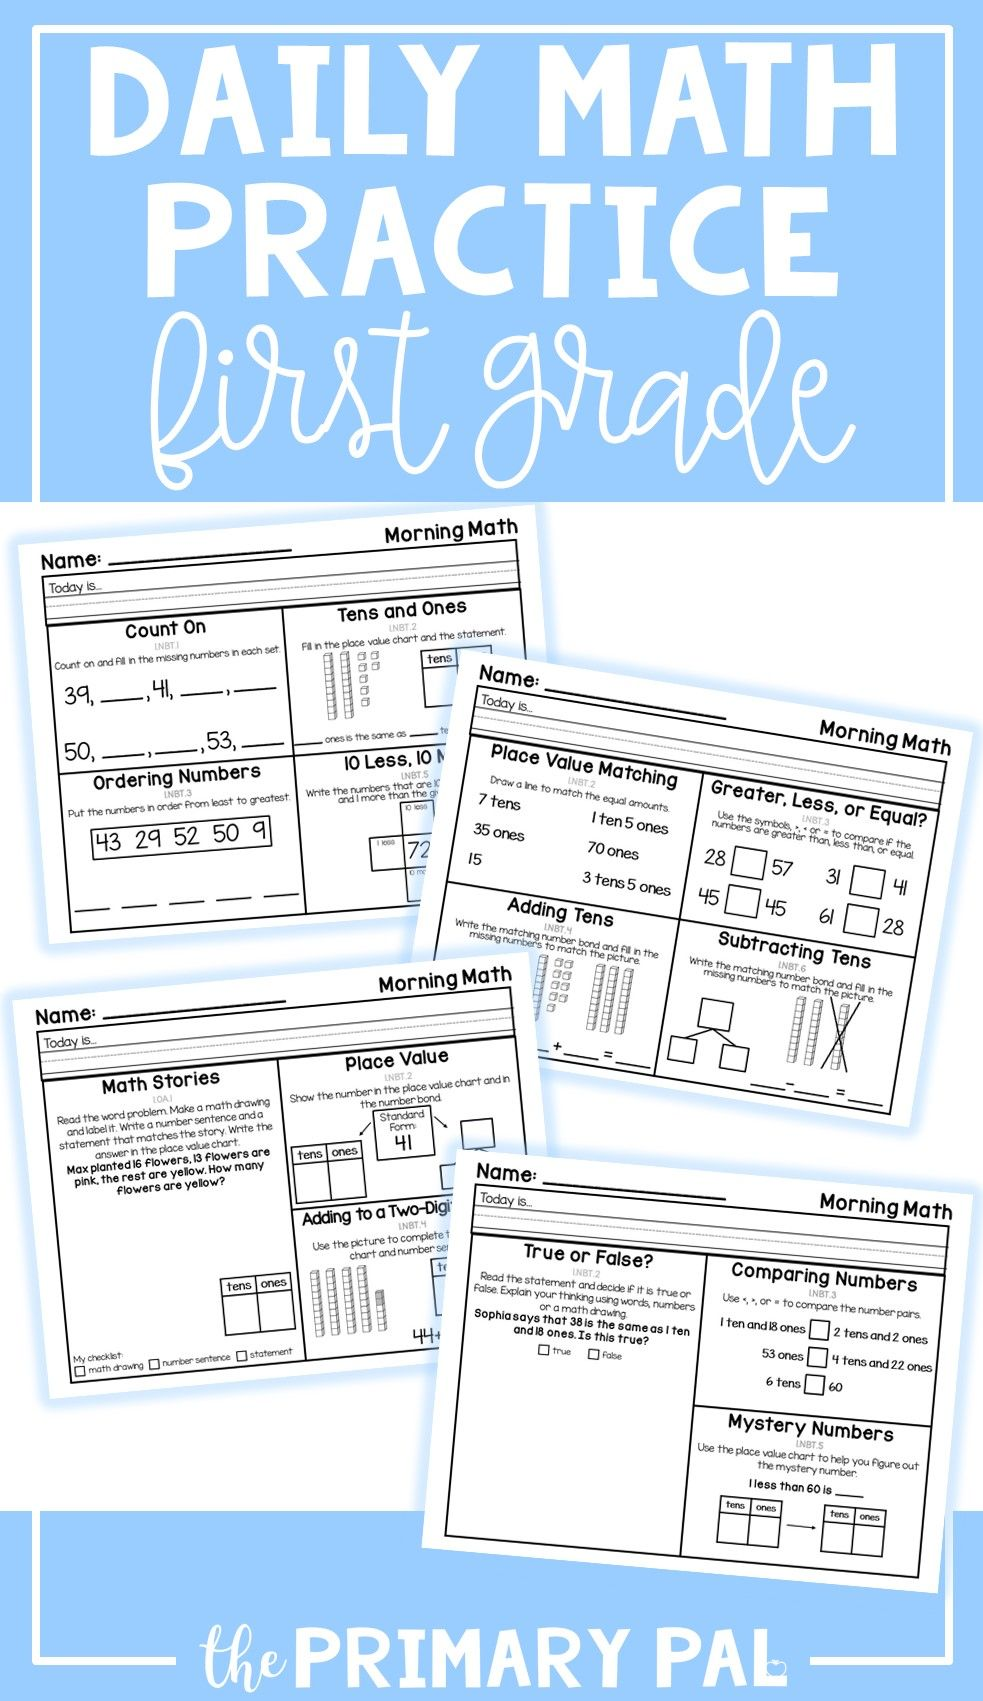 Perfect For Establishing A Daily Routine That Supports The Development Of Math Skills In 1st Math Fact Practice Daily Math Practice First Grade Math Worksheets [ 1701 x 983 Pixel ]